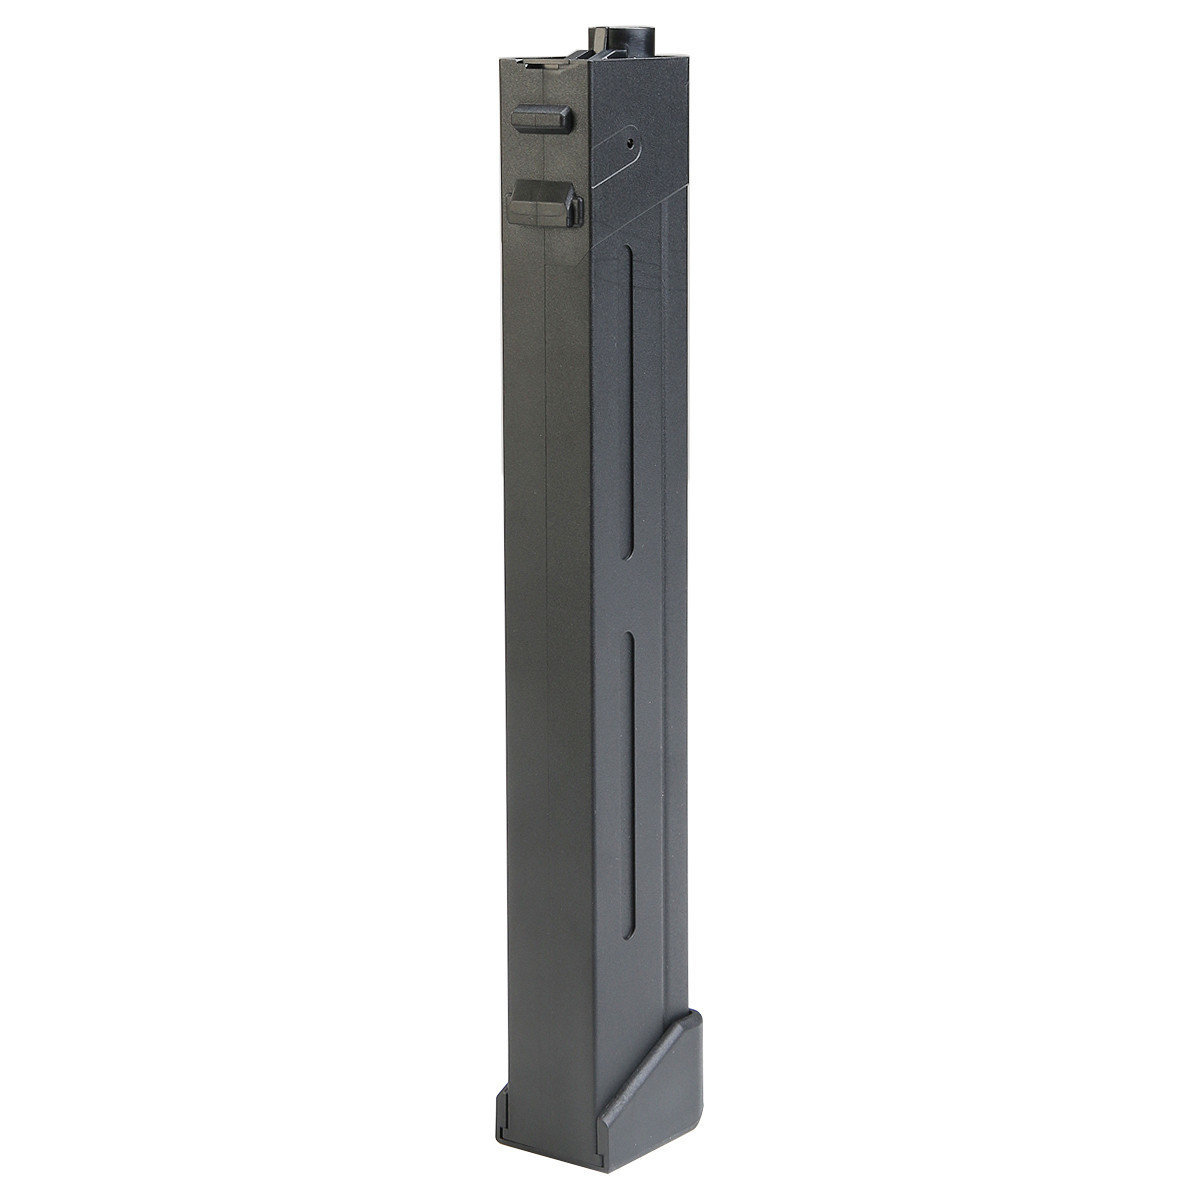 View larger image of Valken 110rd SMG Mid-Cap Airsoft Magazine